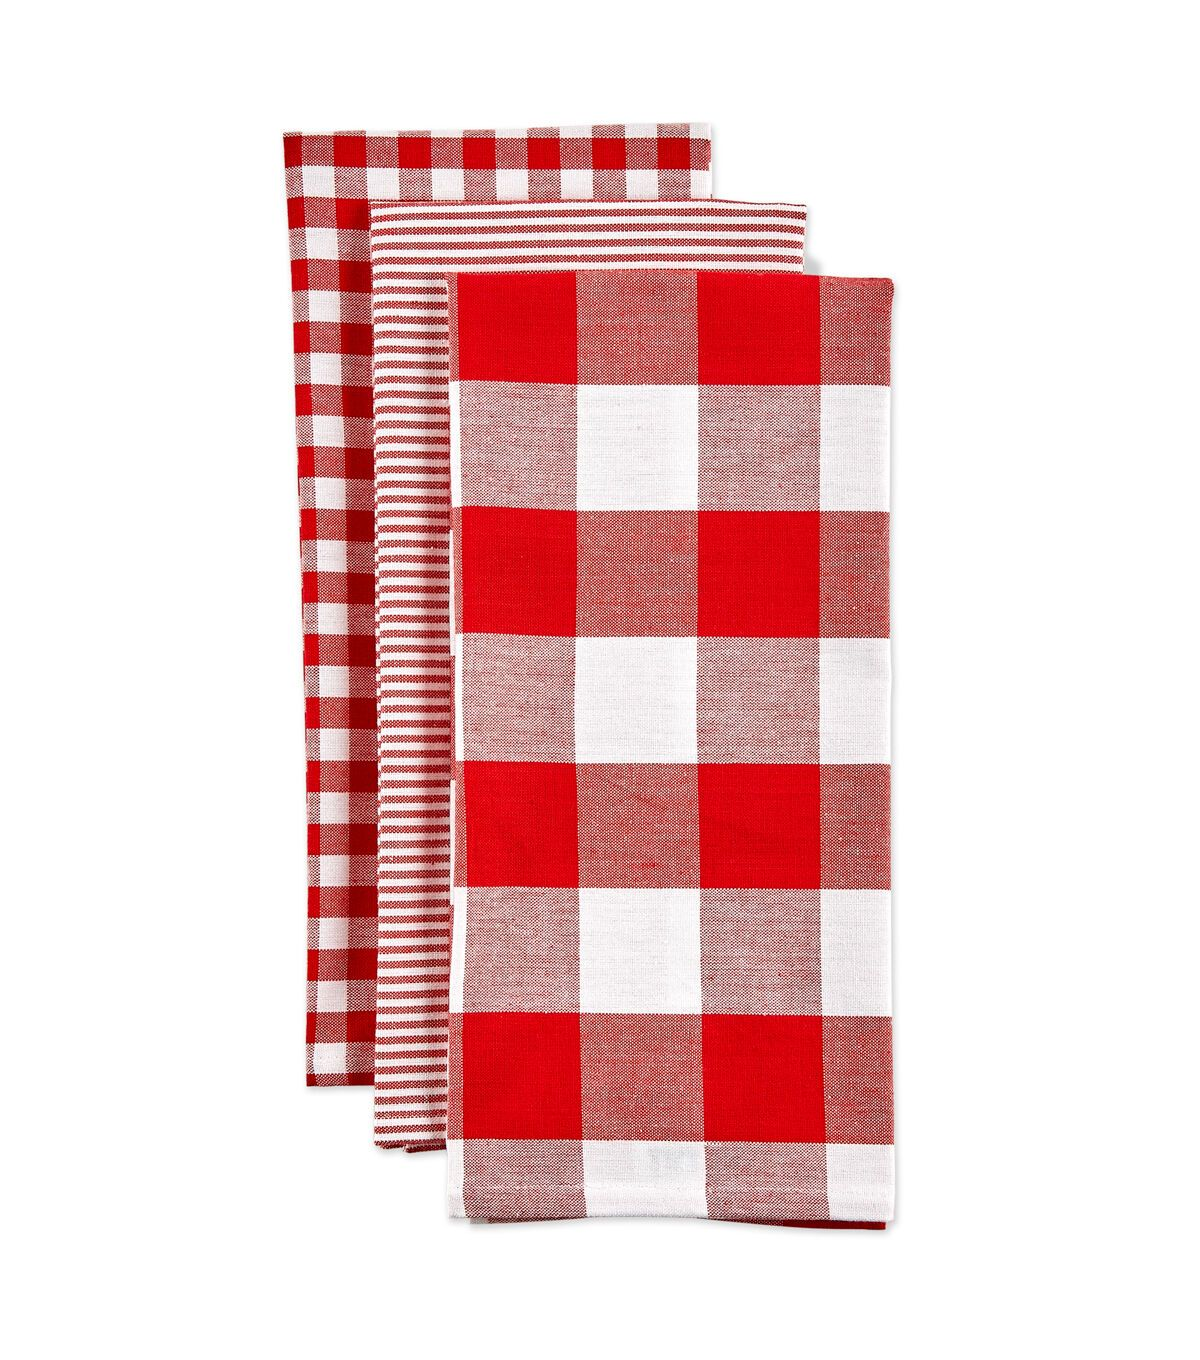 Design Imports Mixed Check Kitchen Towel Set Red White Towel